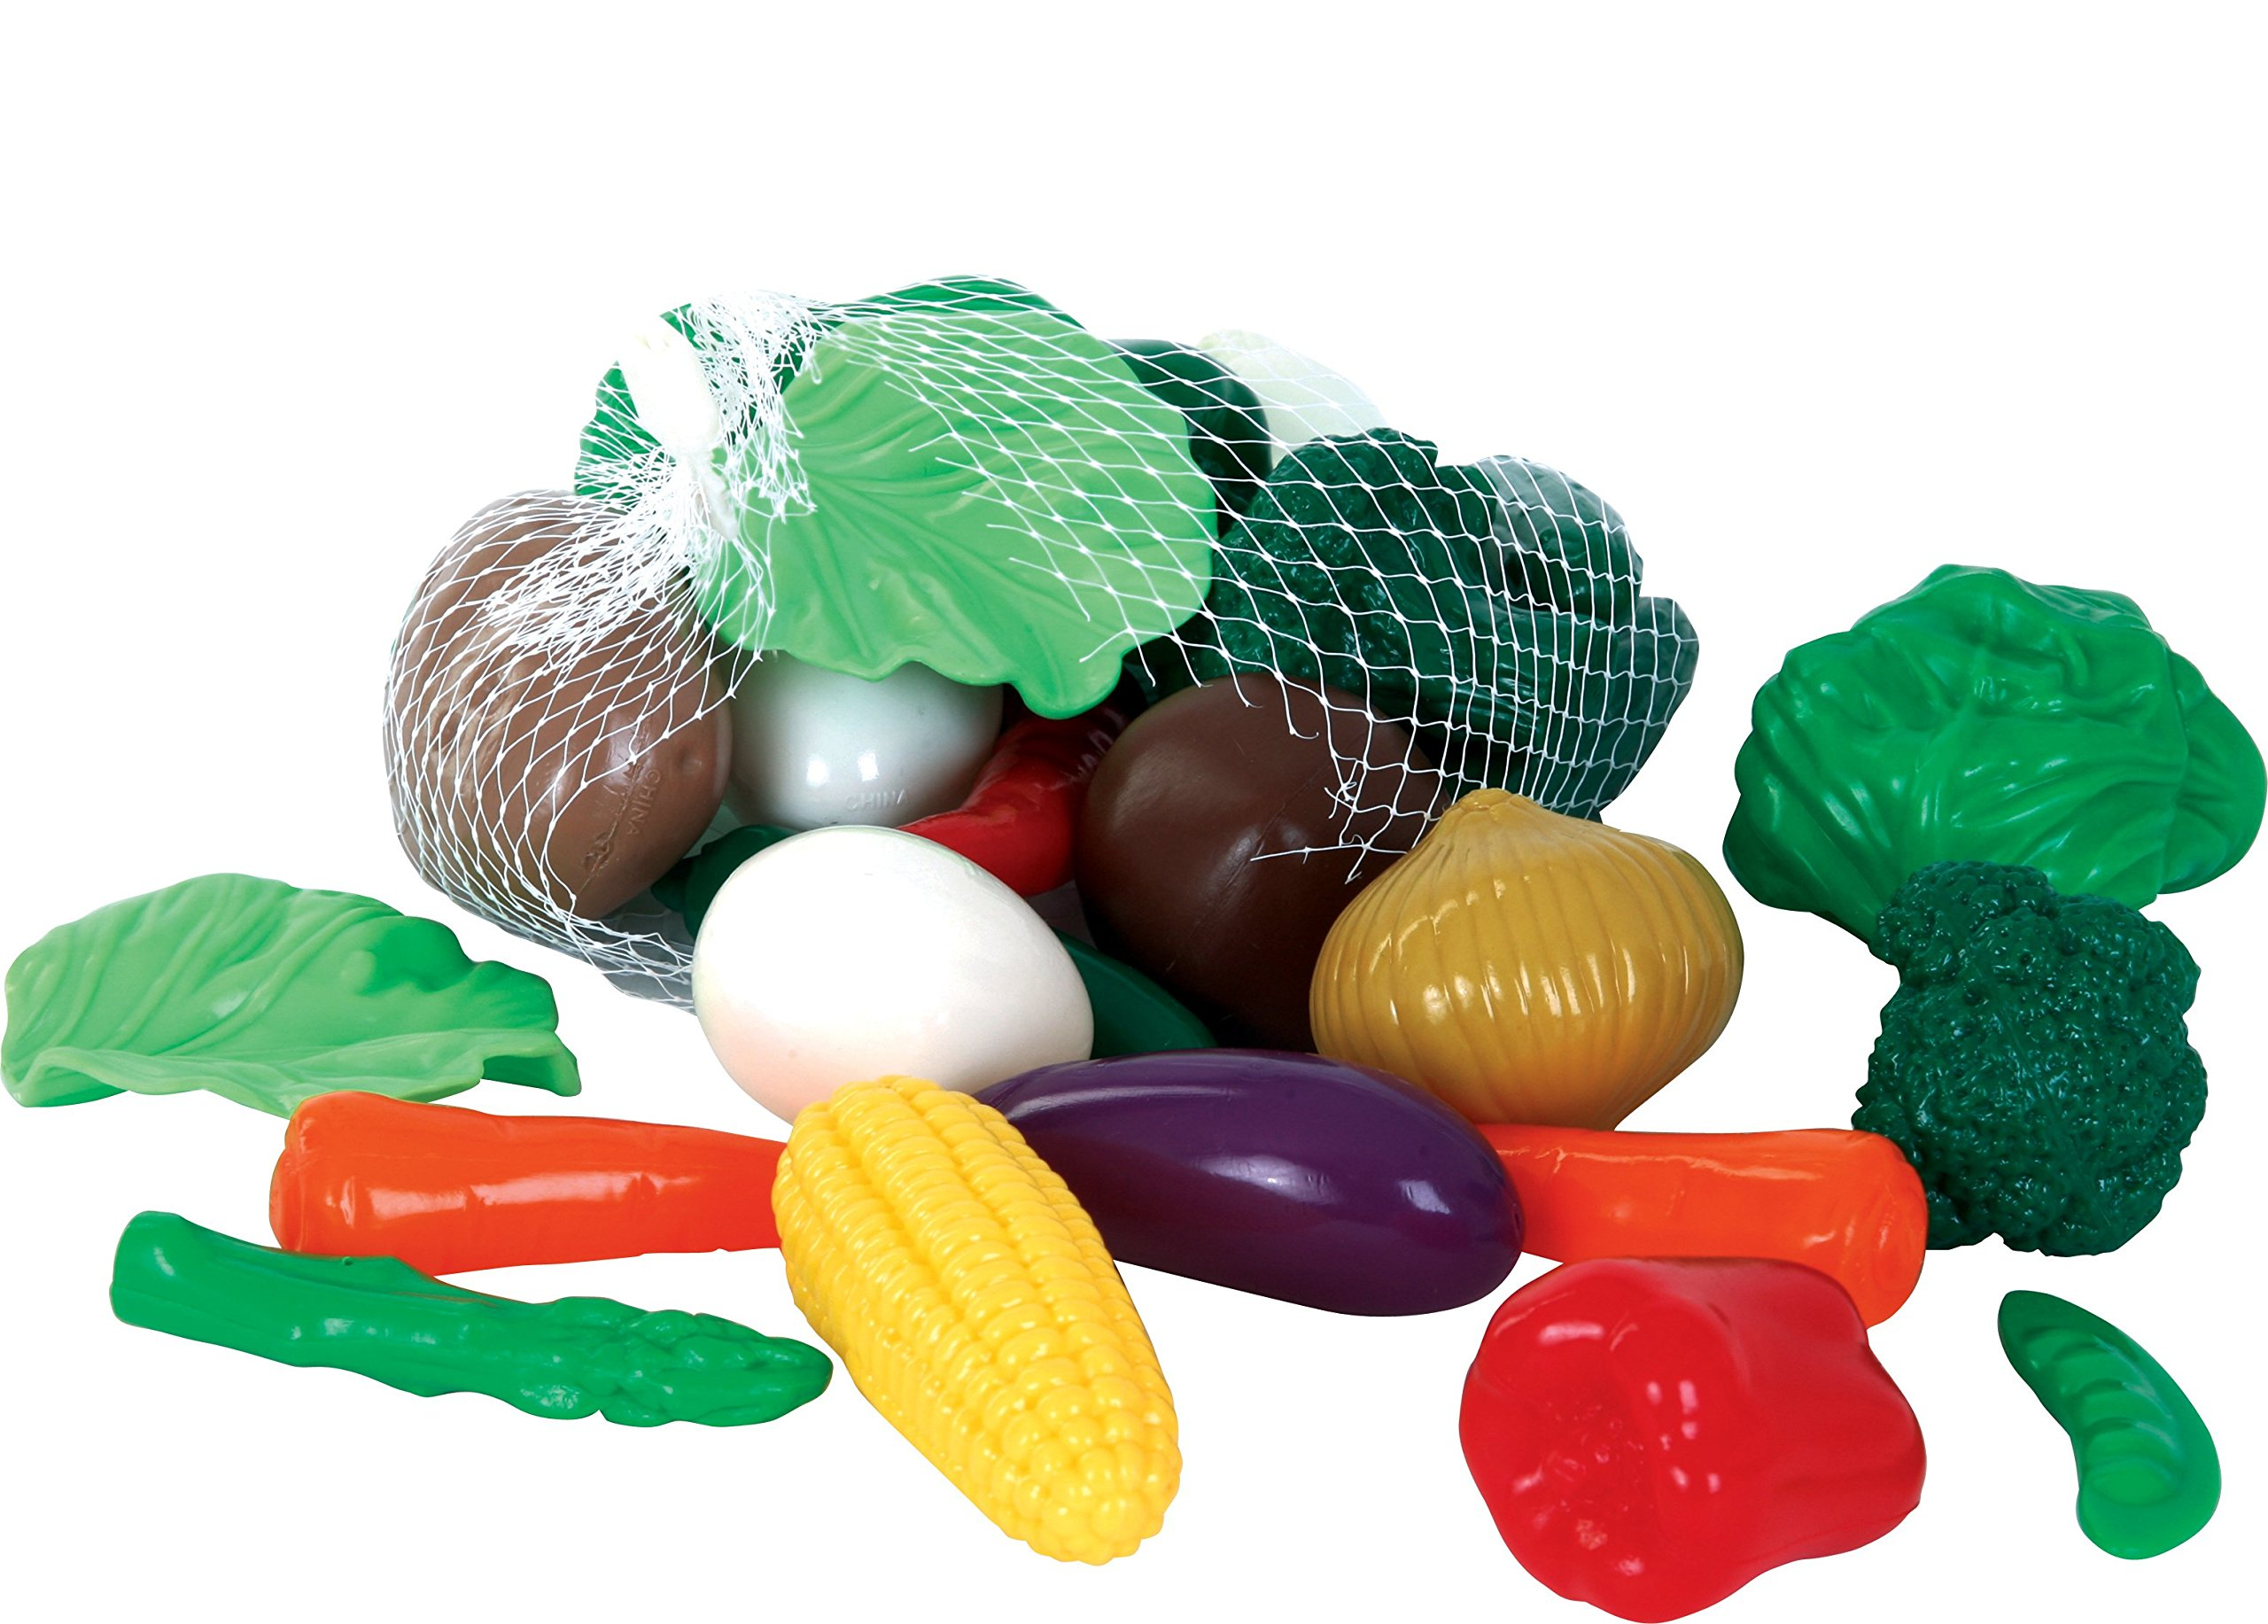 Gowi Toys Play Food Vegetables by Gowi Toys Austria